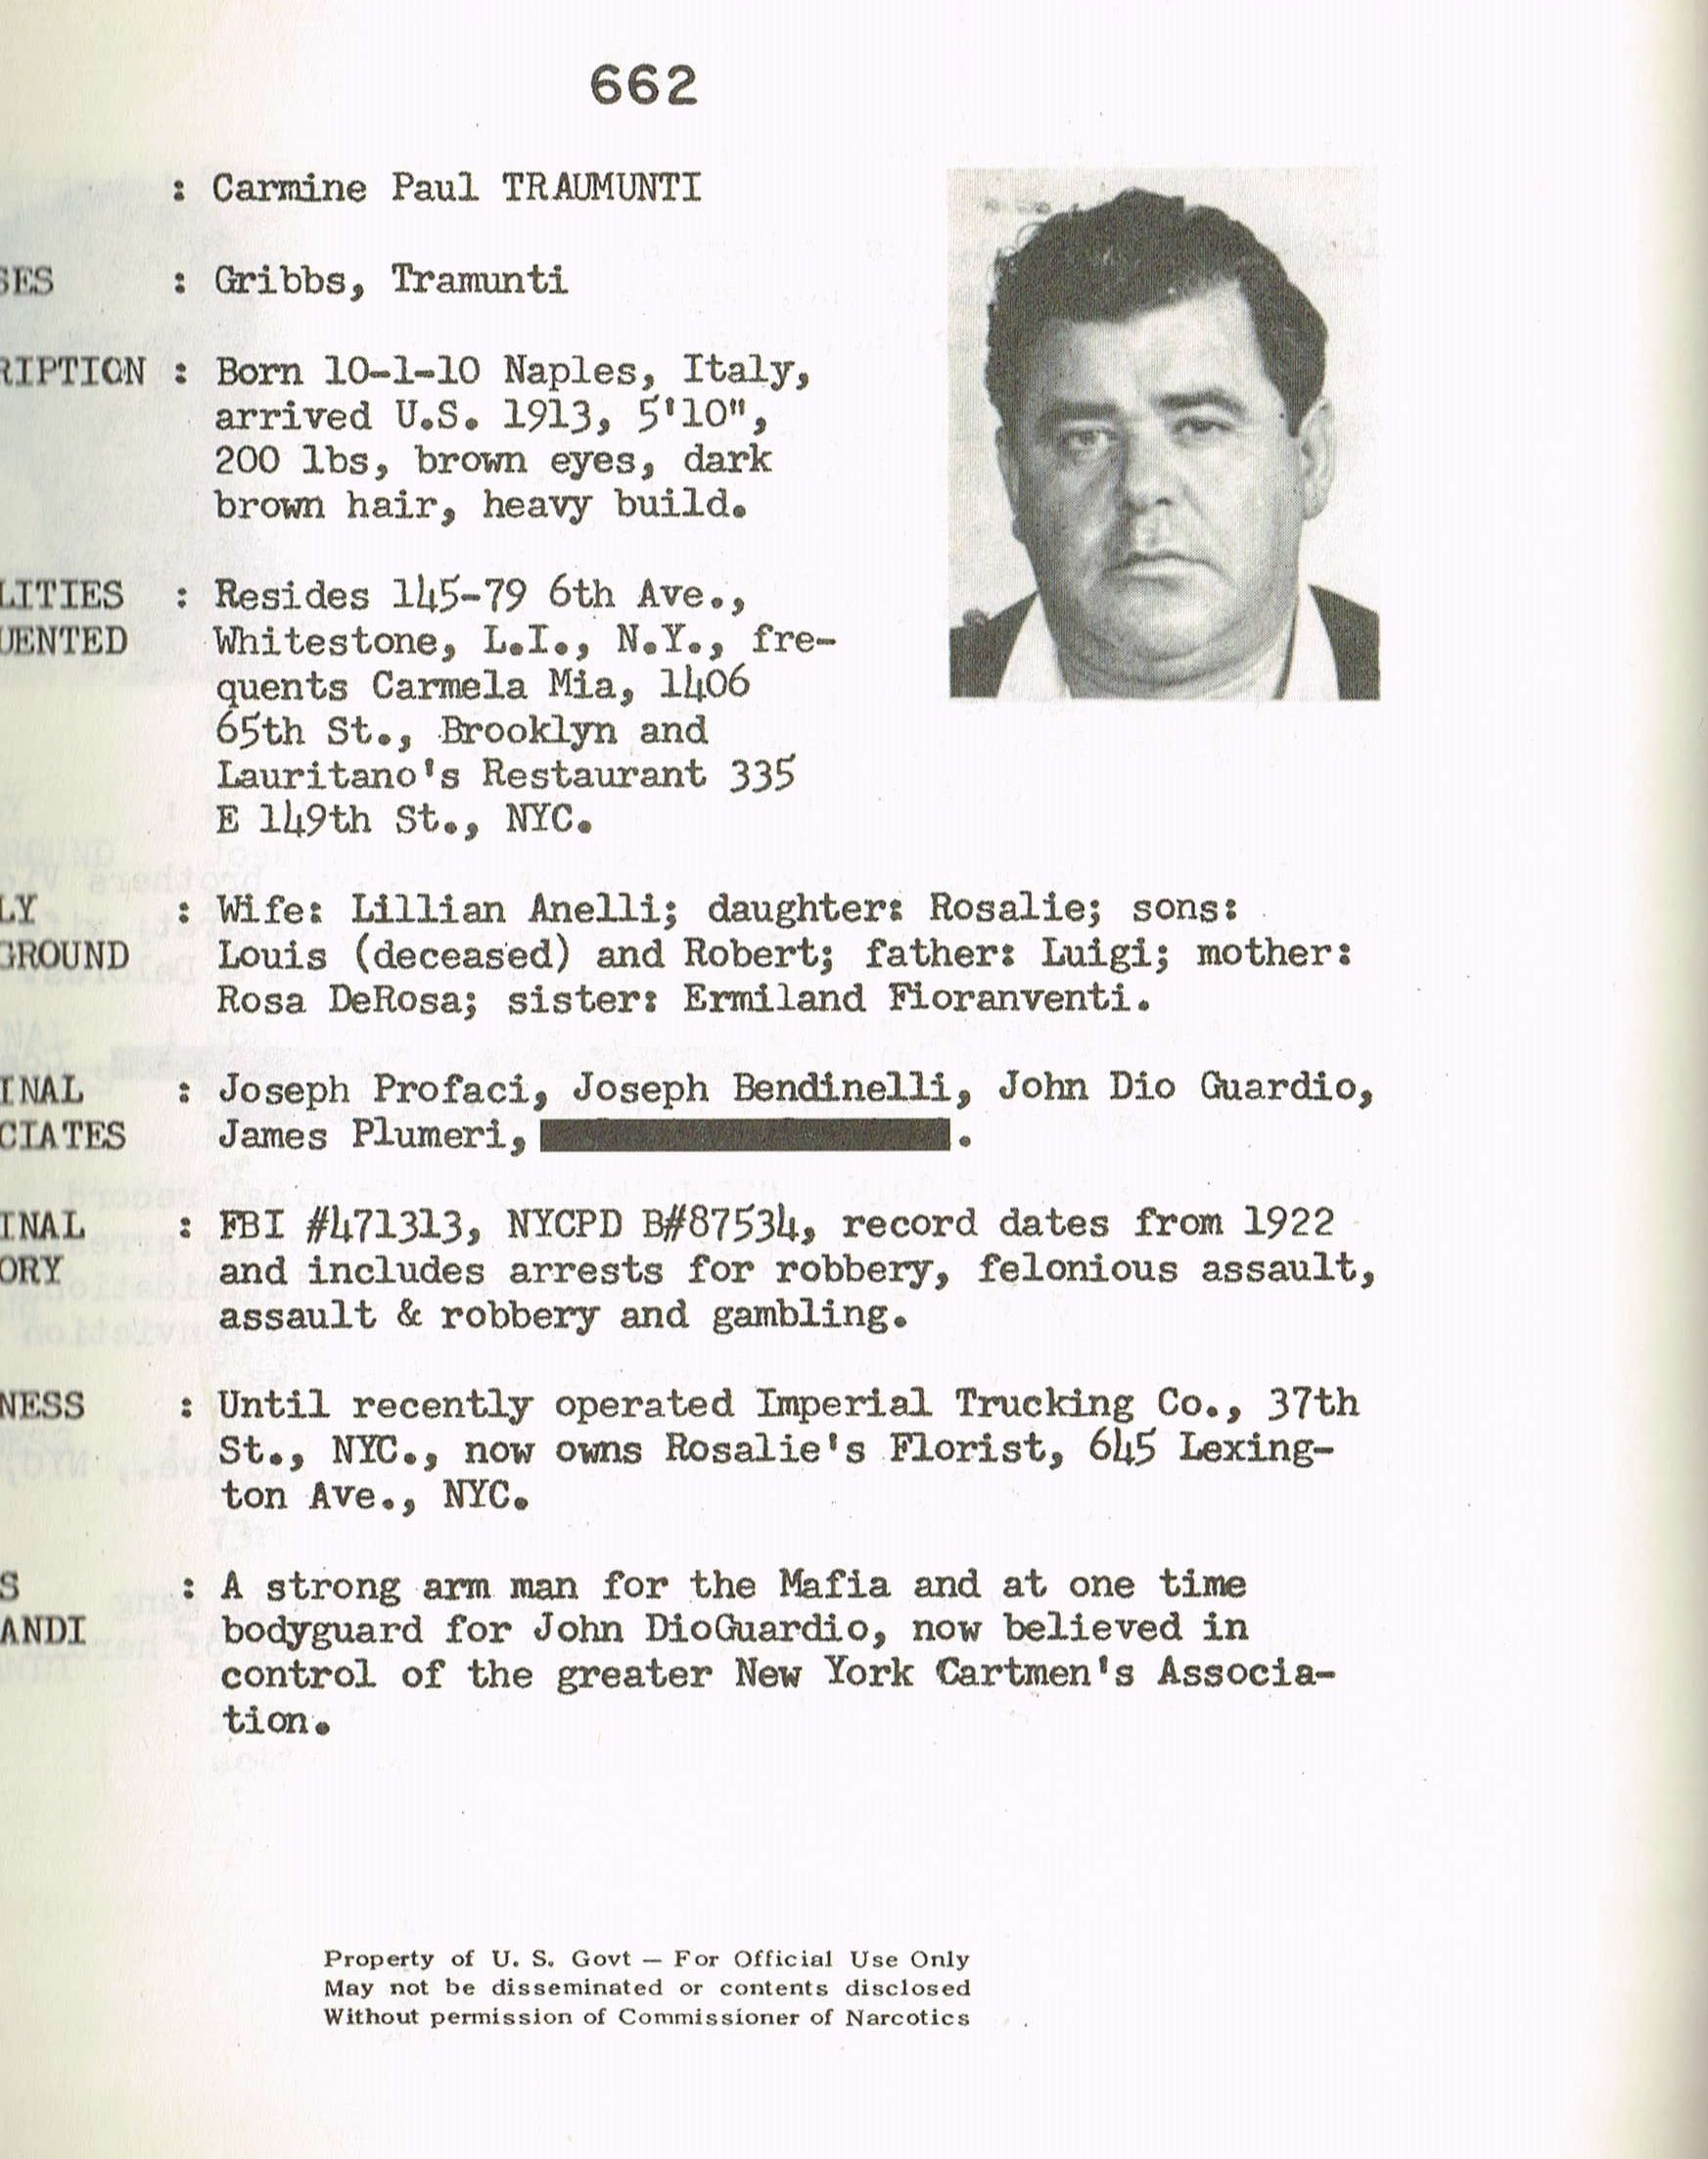 Carmine Mr Gribbs Tramunti With Images Crime Family Mobster